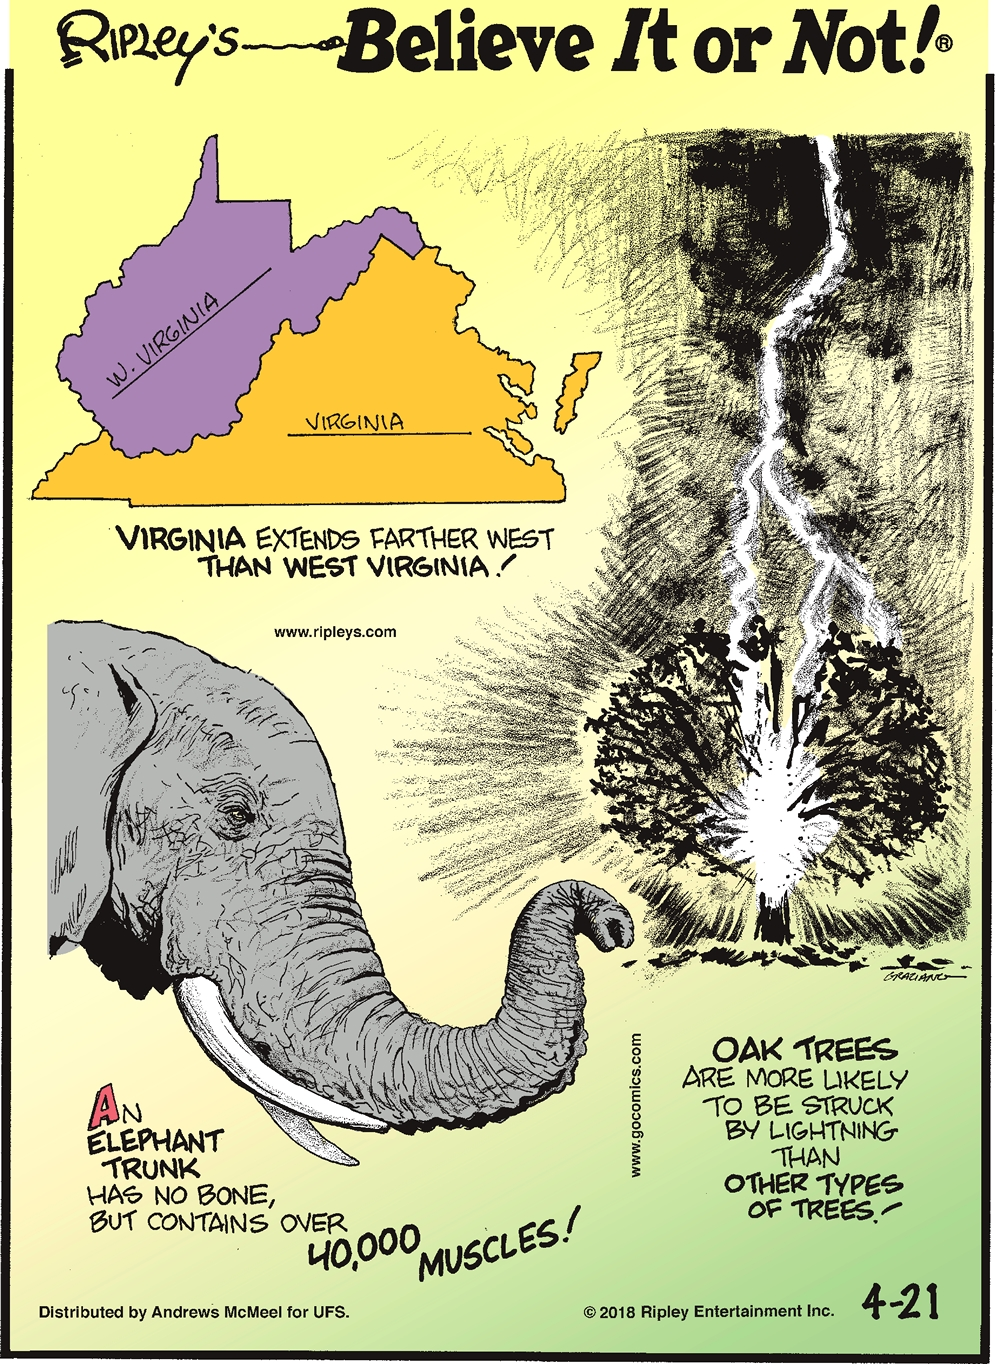 Virginia extends farther west than West Virginia!-------------------- An elephant trunk has no bone, but contains over 40,000 muscles!-------------------- Oak trees are more likely to be struck by lightning than other types of trees!